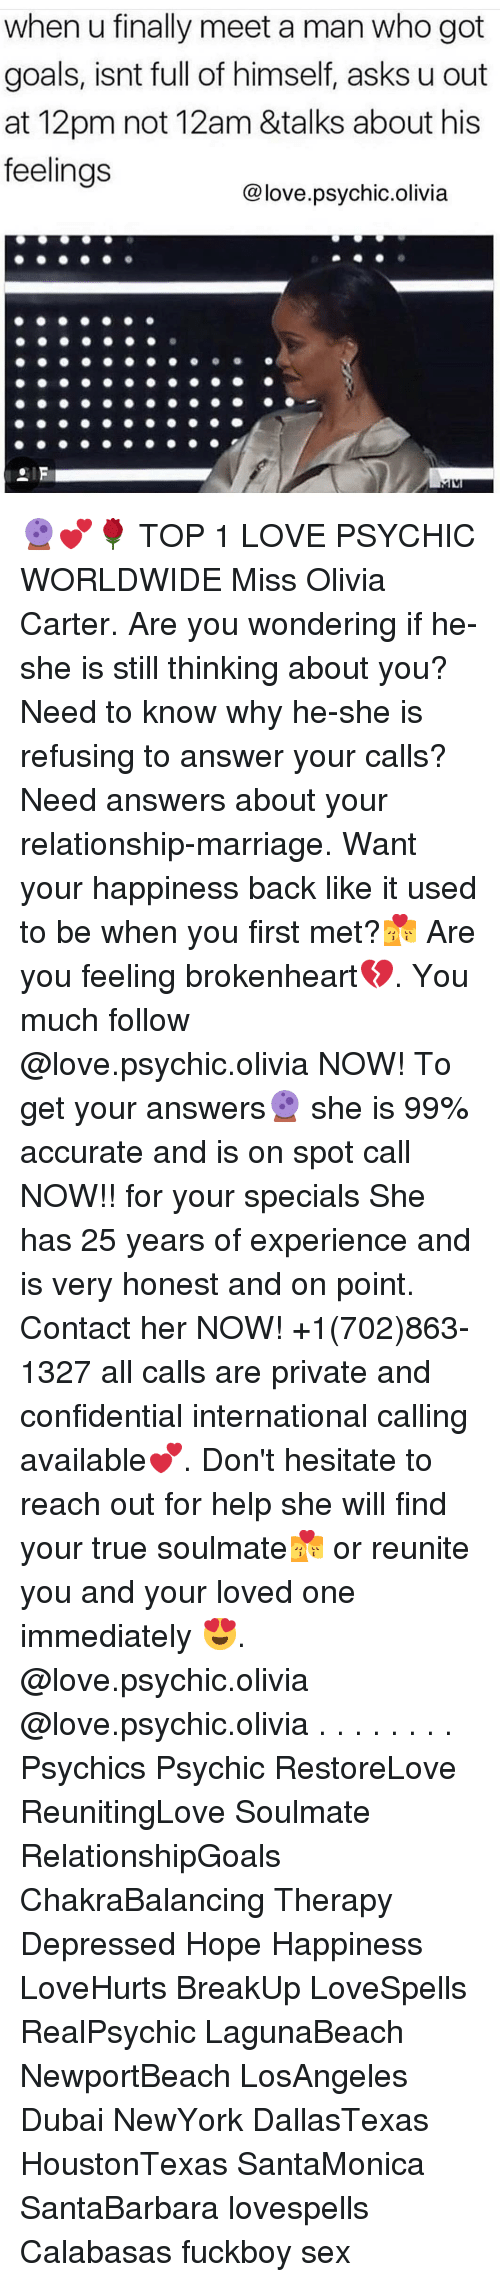 brokenheart: when u finally meet a man who got  goals, isnt full of himself, asks u out  at 12pm not 12am &talks about his  feelings  @love.psychic.olivia 🔮💕🌹 TOP 1 LOVE PSYCHIC WORLDWIDE Miss Olivia Carter. Are you wondering if he-she is still thinking about you? Need to know why he-she is refusing to answer your calls? Need answers about your relationship-marriage. Want your happiness back like it used to be when you first met?💏 Are you feeling brokenheart💔. You much follow @love.psychic.olivia NOW! To get your answers🔮 she is 99% accurate and is on spot call NOW!! for your specials She has 25 years of experience and is very honest and on point. Contact her NOW! +1(702)863-1327 all calls are private and confidential international calling available💕. Don't hesitate to reach out for help she will find your true soulmate💏 or reunite you and your loved one immediately 😍. @love.psychic.olivia @love.psychic.olivia . . . . . . . . Psychics Psychic RestoreLove ReunitingLove Soulmate RelationshipGoals ChakraBalancing Therapy Depressed Hope Happiness LoveHurts BreakUp LoveSpells RealPsychic LagunaBeach NewportBeach LosAngeles Dubai NewYork DallasTexas HoustonTexas SantaMonica SantaBarbara lovespells Calabasas fuckboy sex